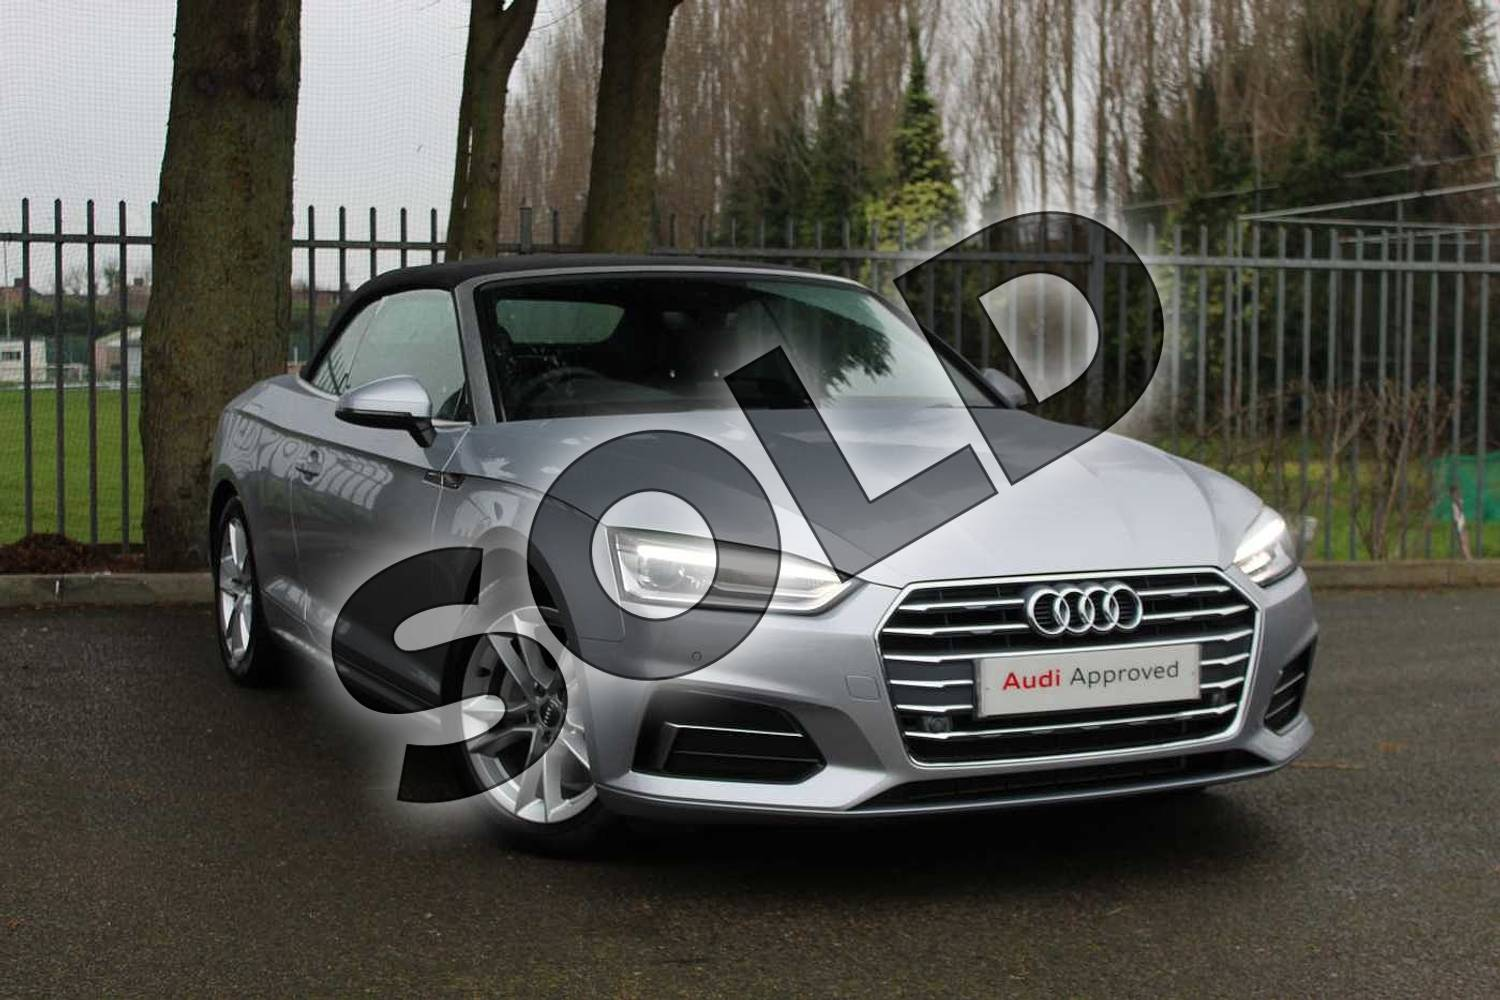 2018 Audi A5 Diesel Cabriolet Diesel 2.0 TDI Sport 2dr S Tronic in Floret Silver Metallic at Coventry Audi